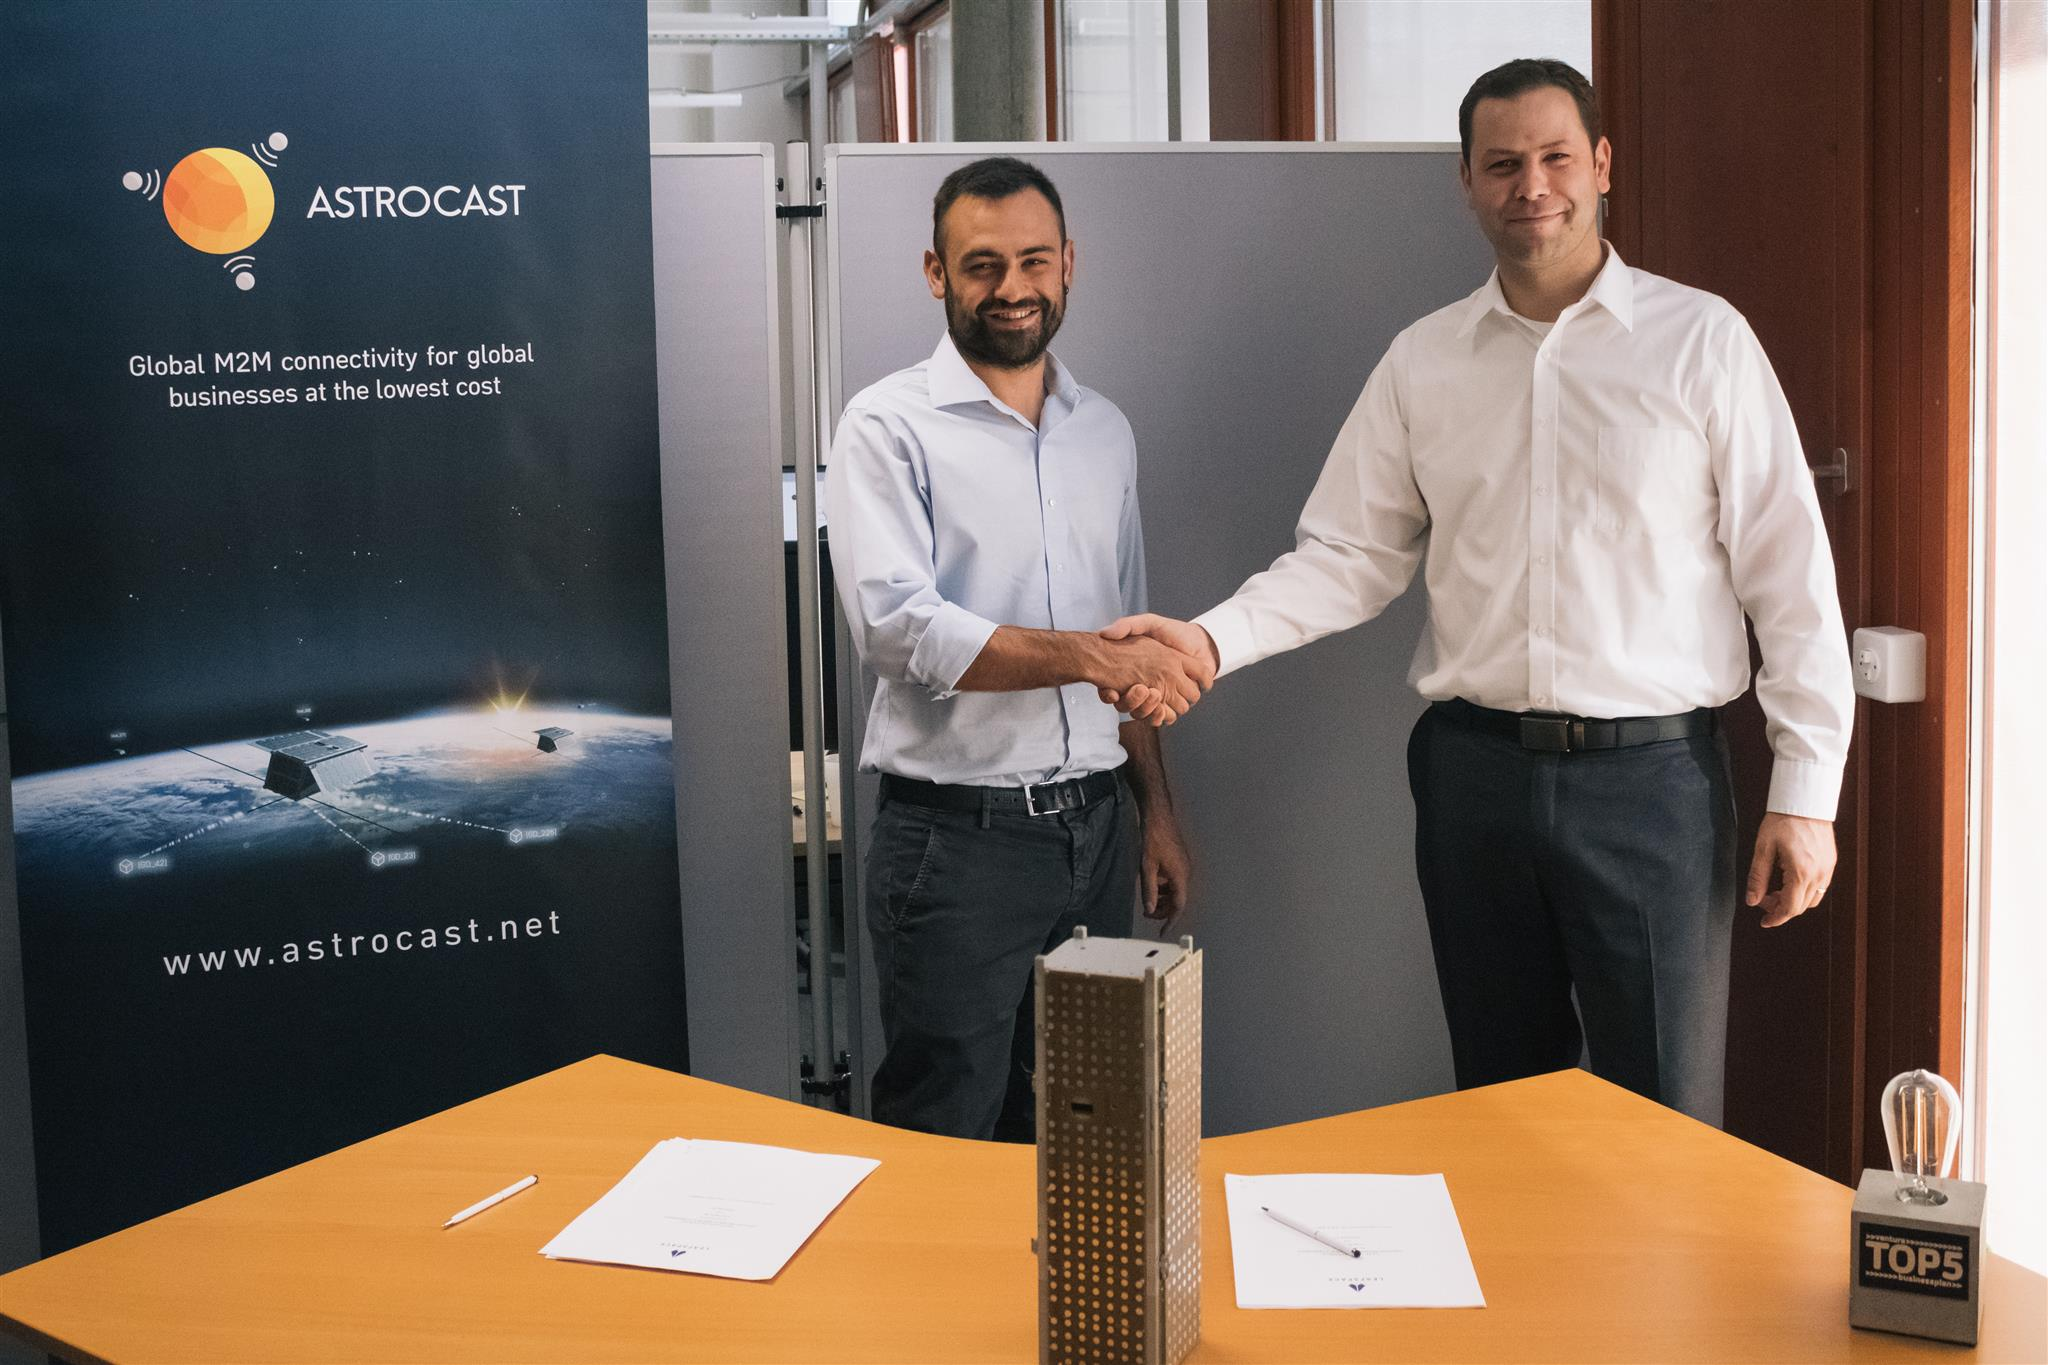 Astrocast Announces Agreement with Leaf Space for Global IoT Network Use of Ground Stations